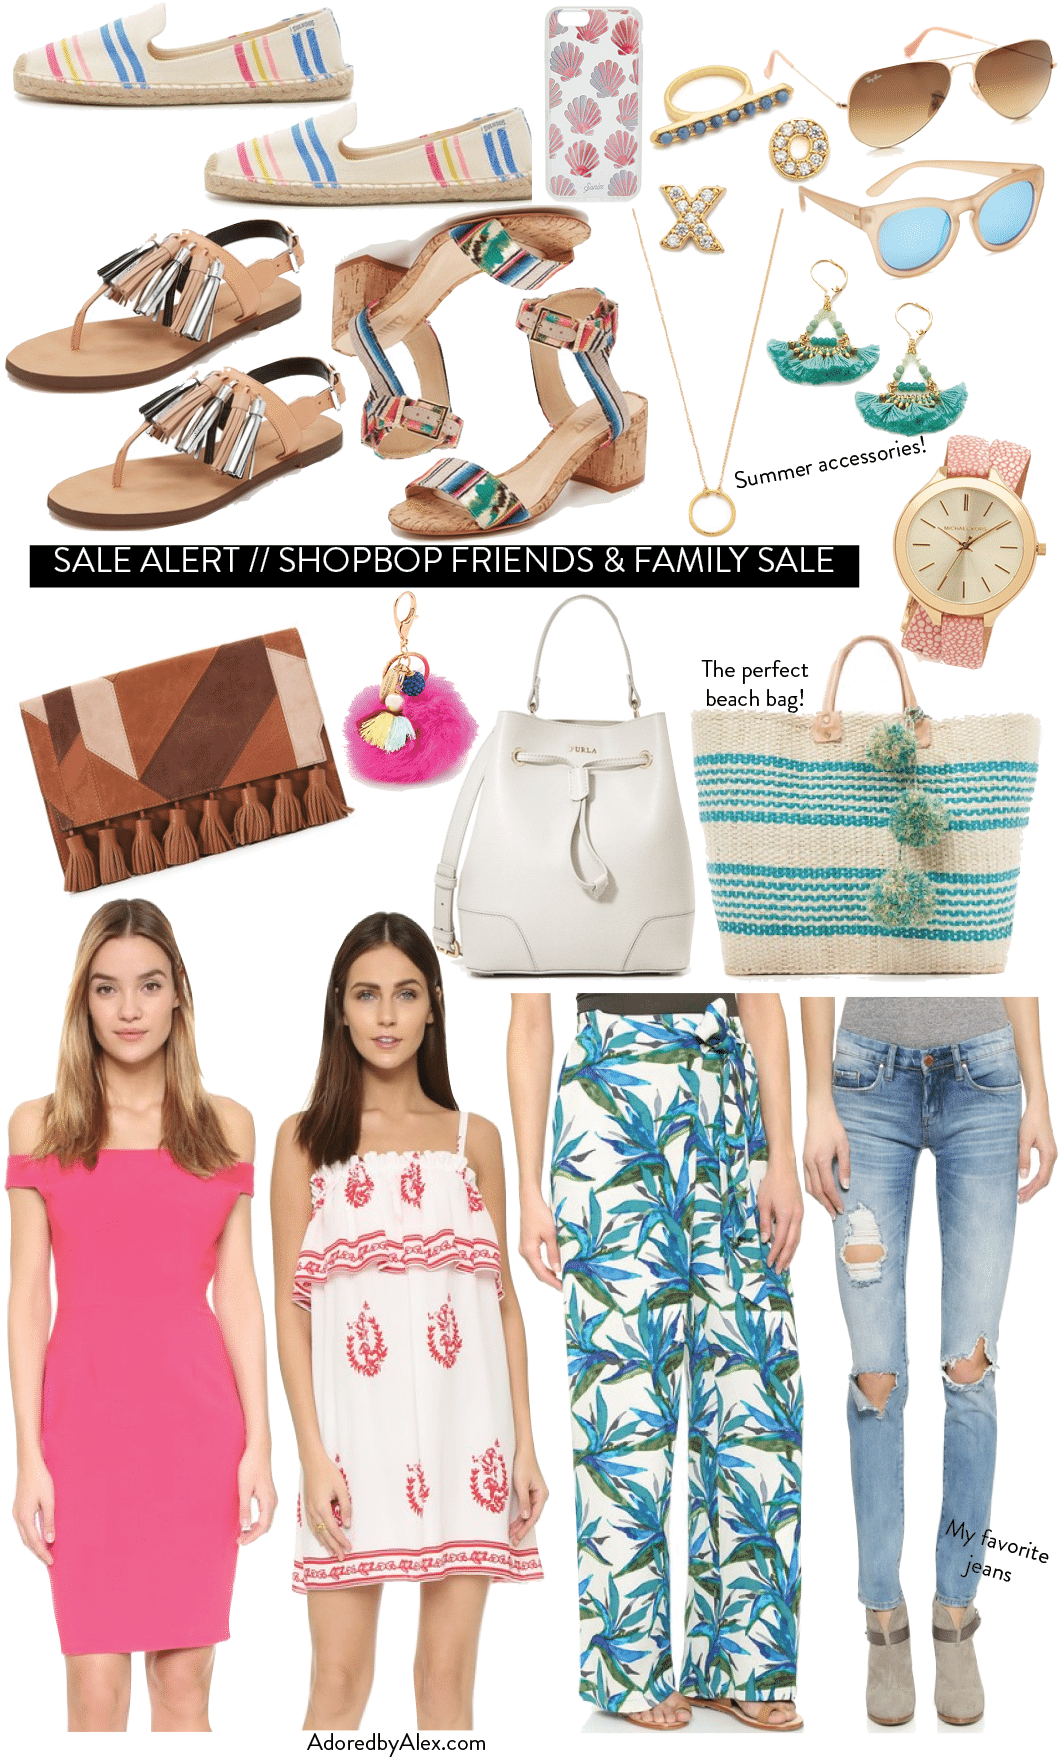 Shopbop friends and family sale 2016